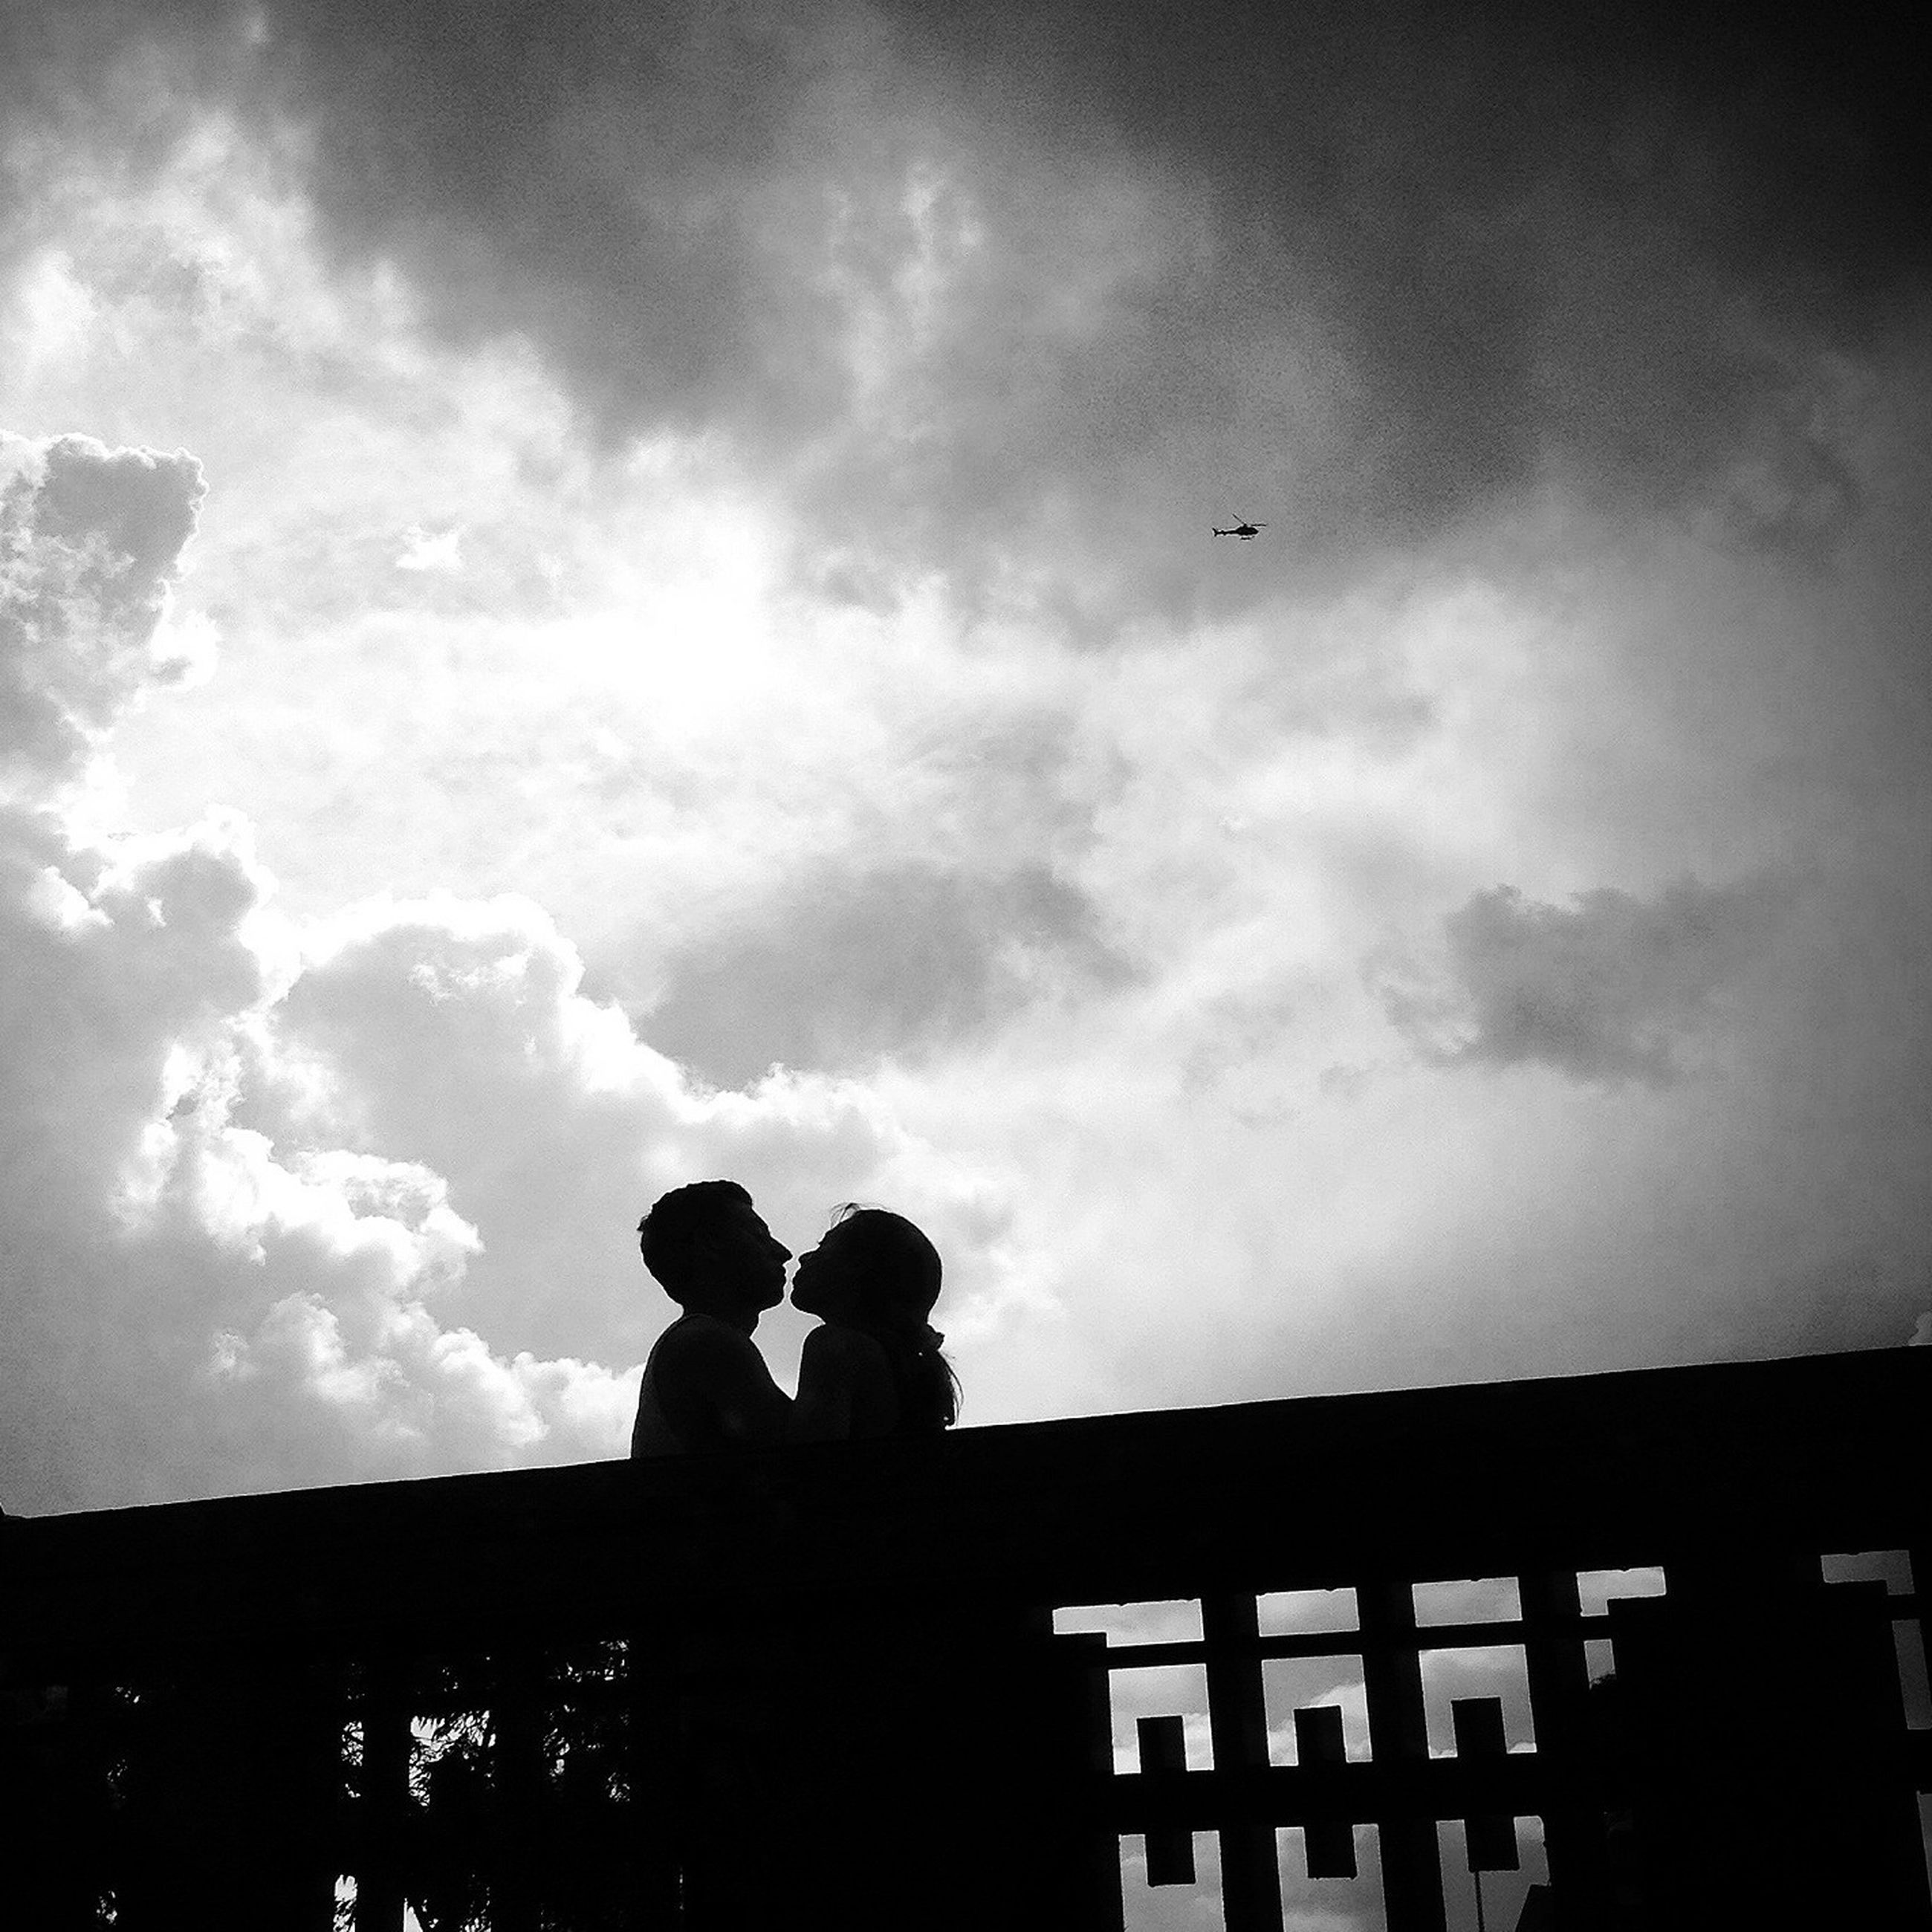 silhouette, sky, men, lifestyles, togetherness, cloud - sky, leisure activity, low angle view, bonding, cloudy, person, outline, standing, boys, childhood, cloud, love